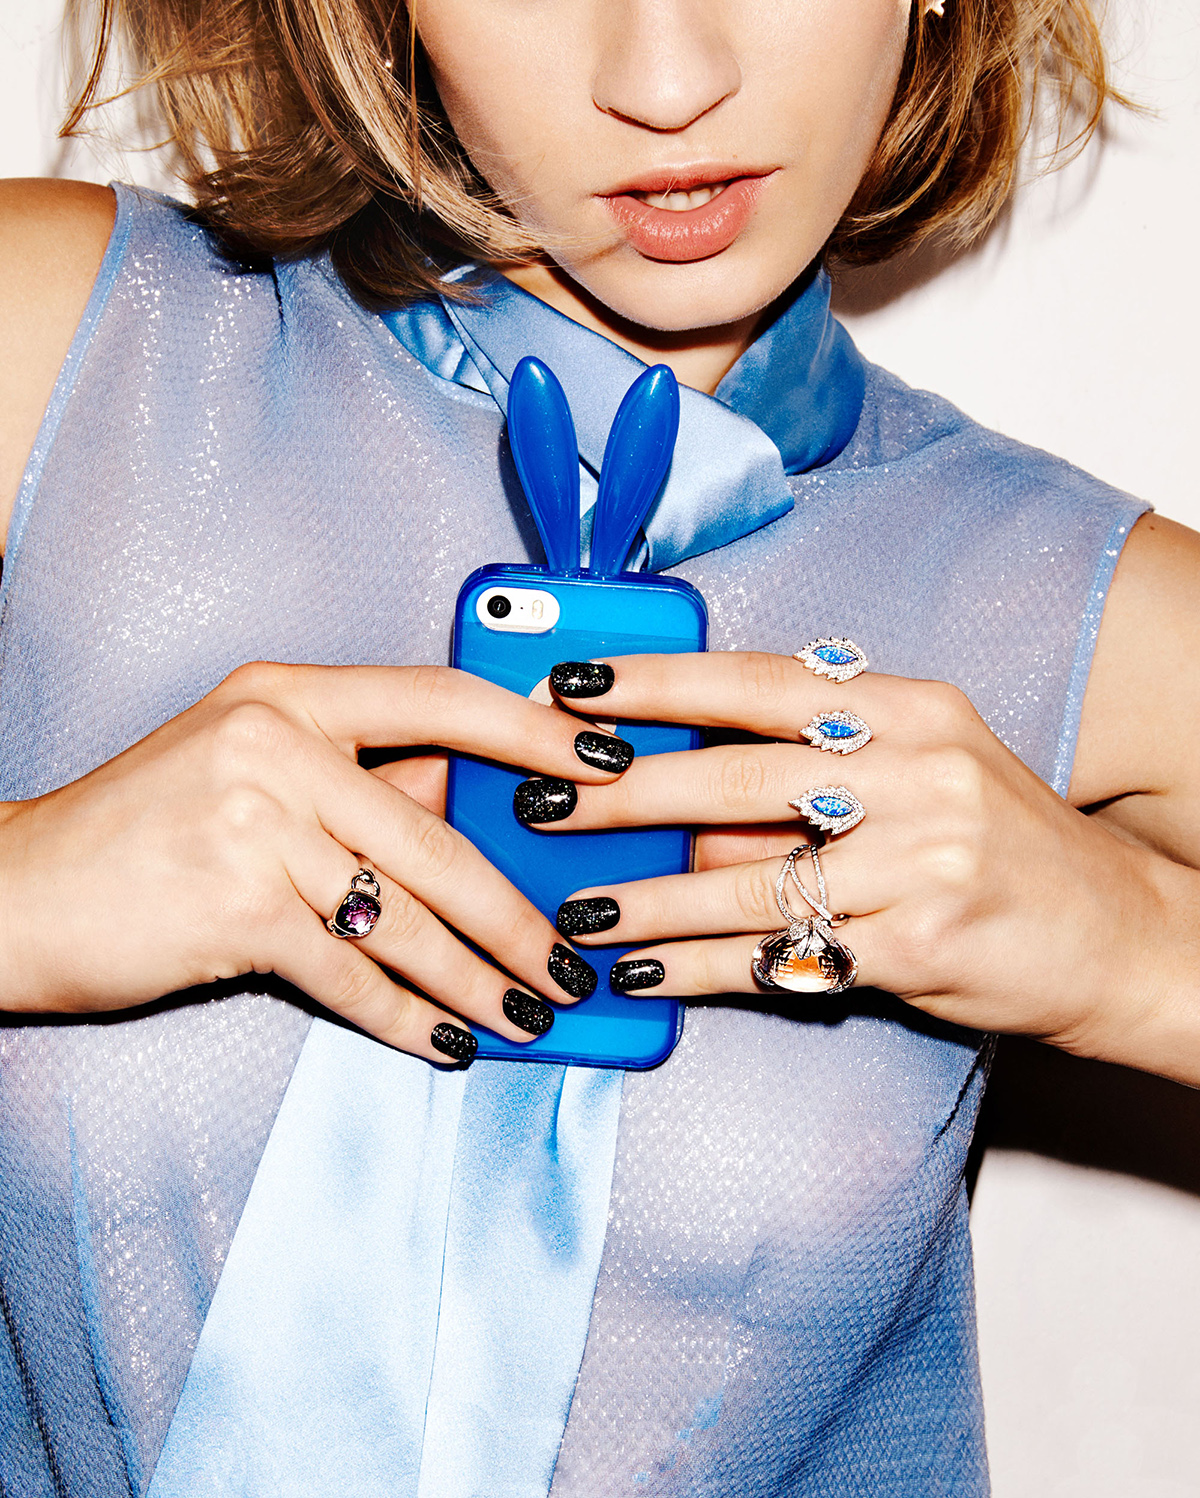 woman taking selfie with blue bunny ears phone case